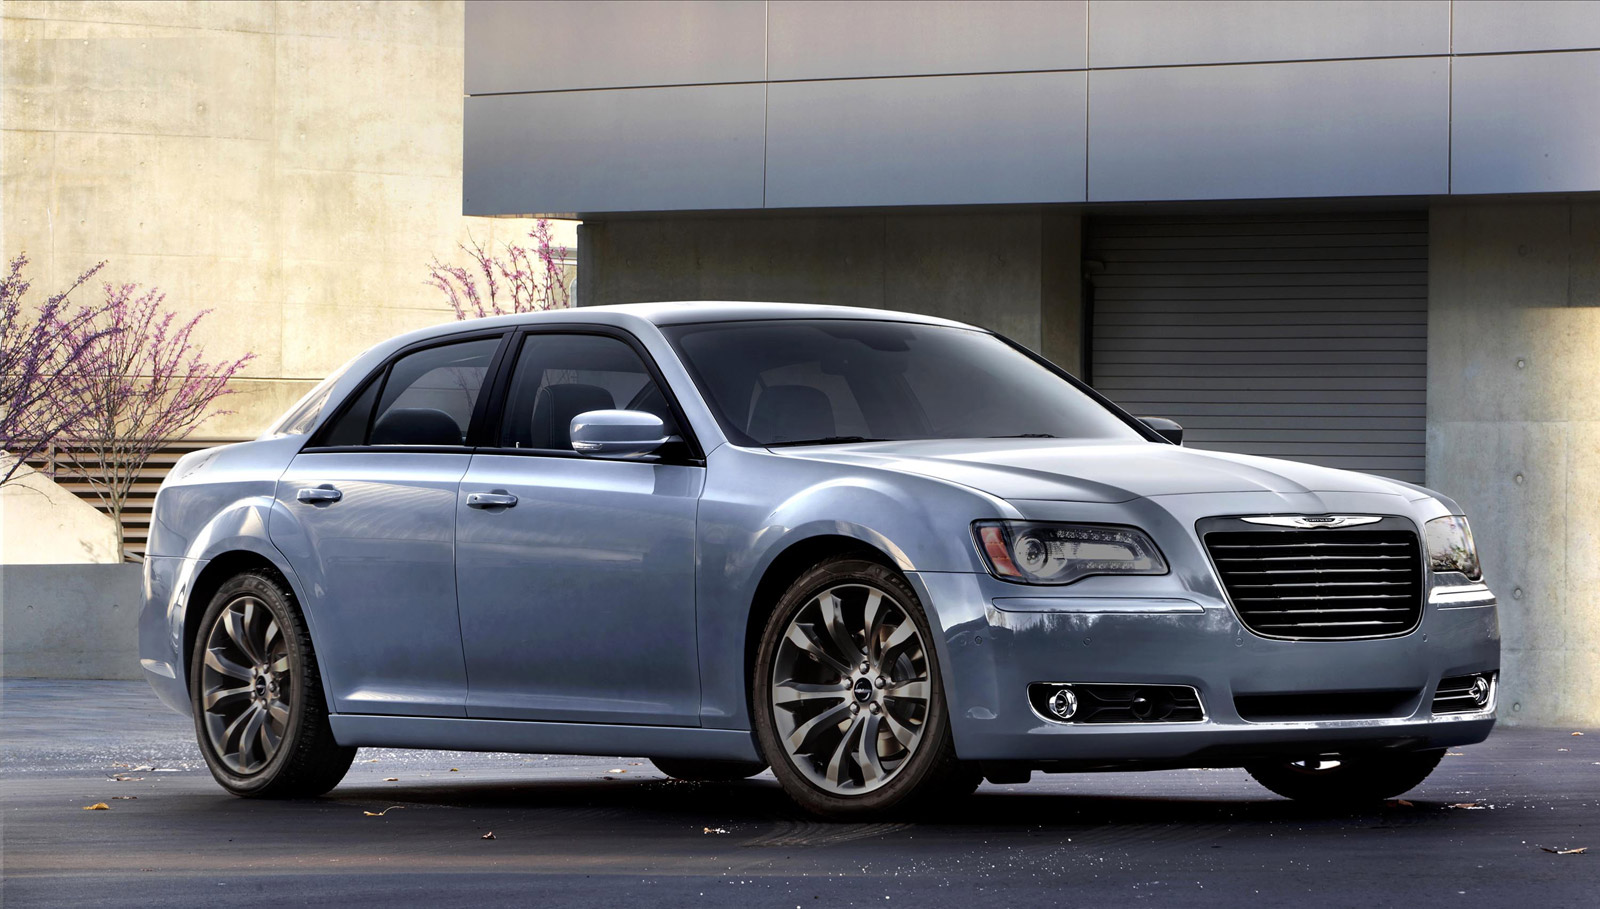 2014 Chrysler 300 Review Ratings Specs Prices And